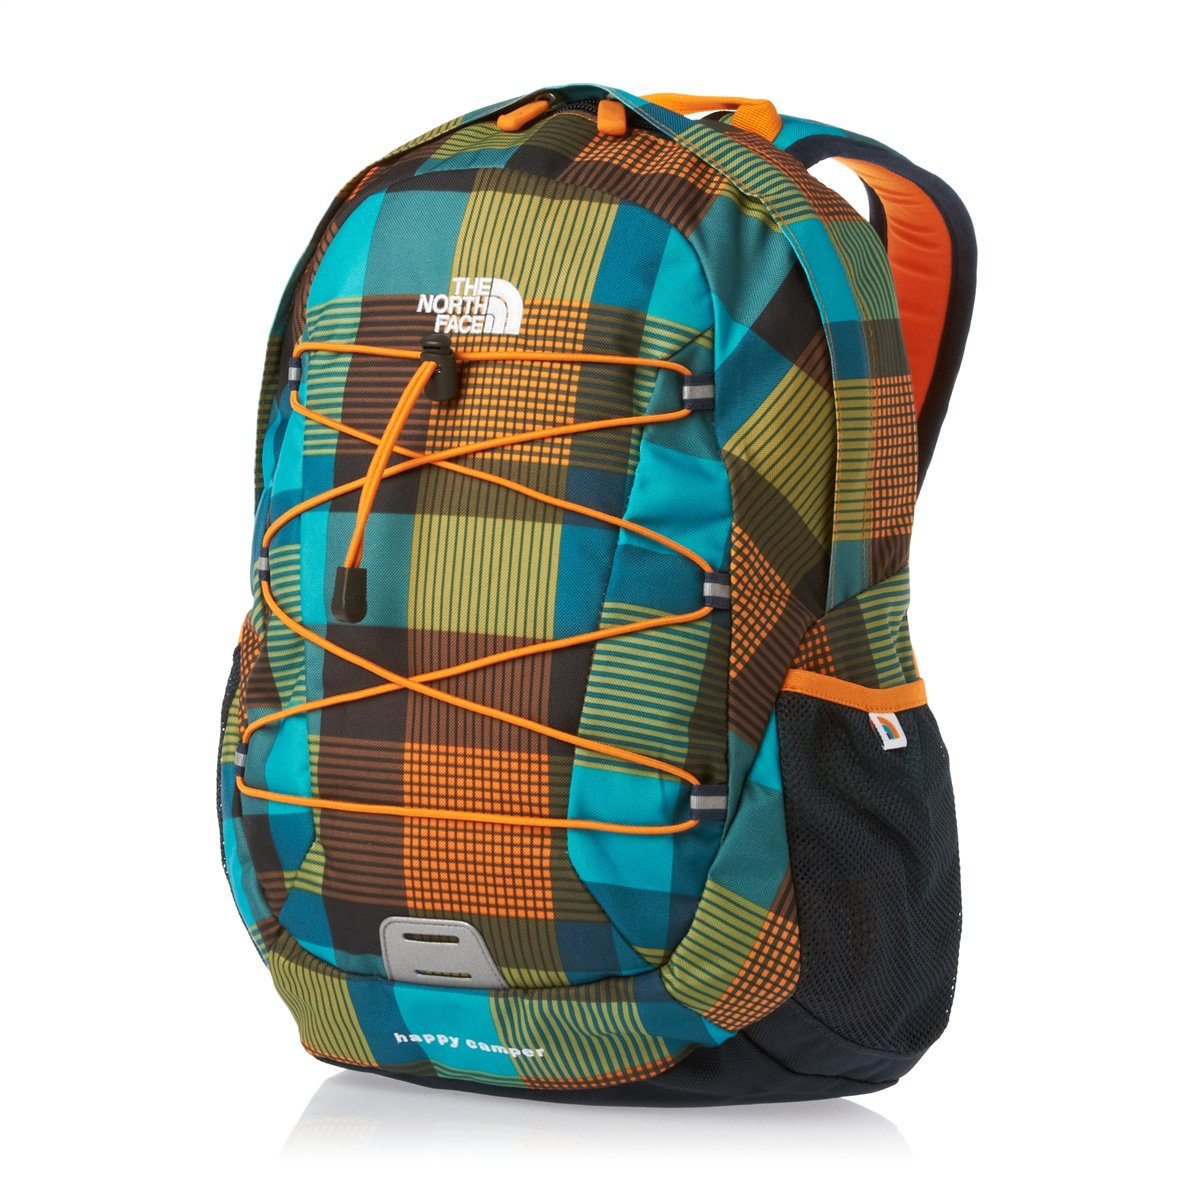 c96e13489 The North Face Kids Happy Camper Backpack - Safety Orange Plaid, 39x27x19cm